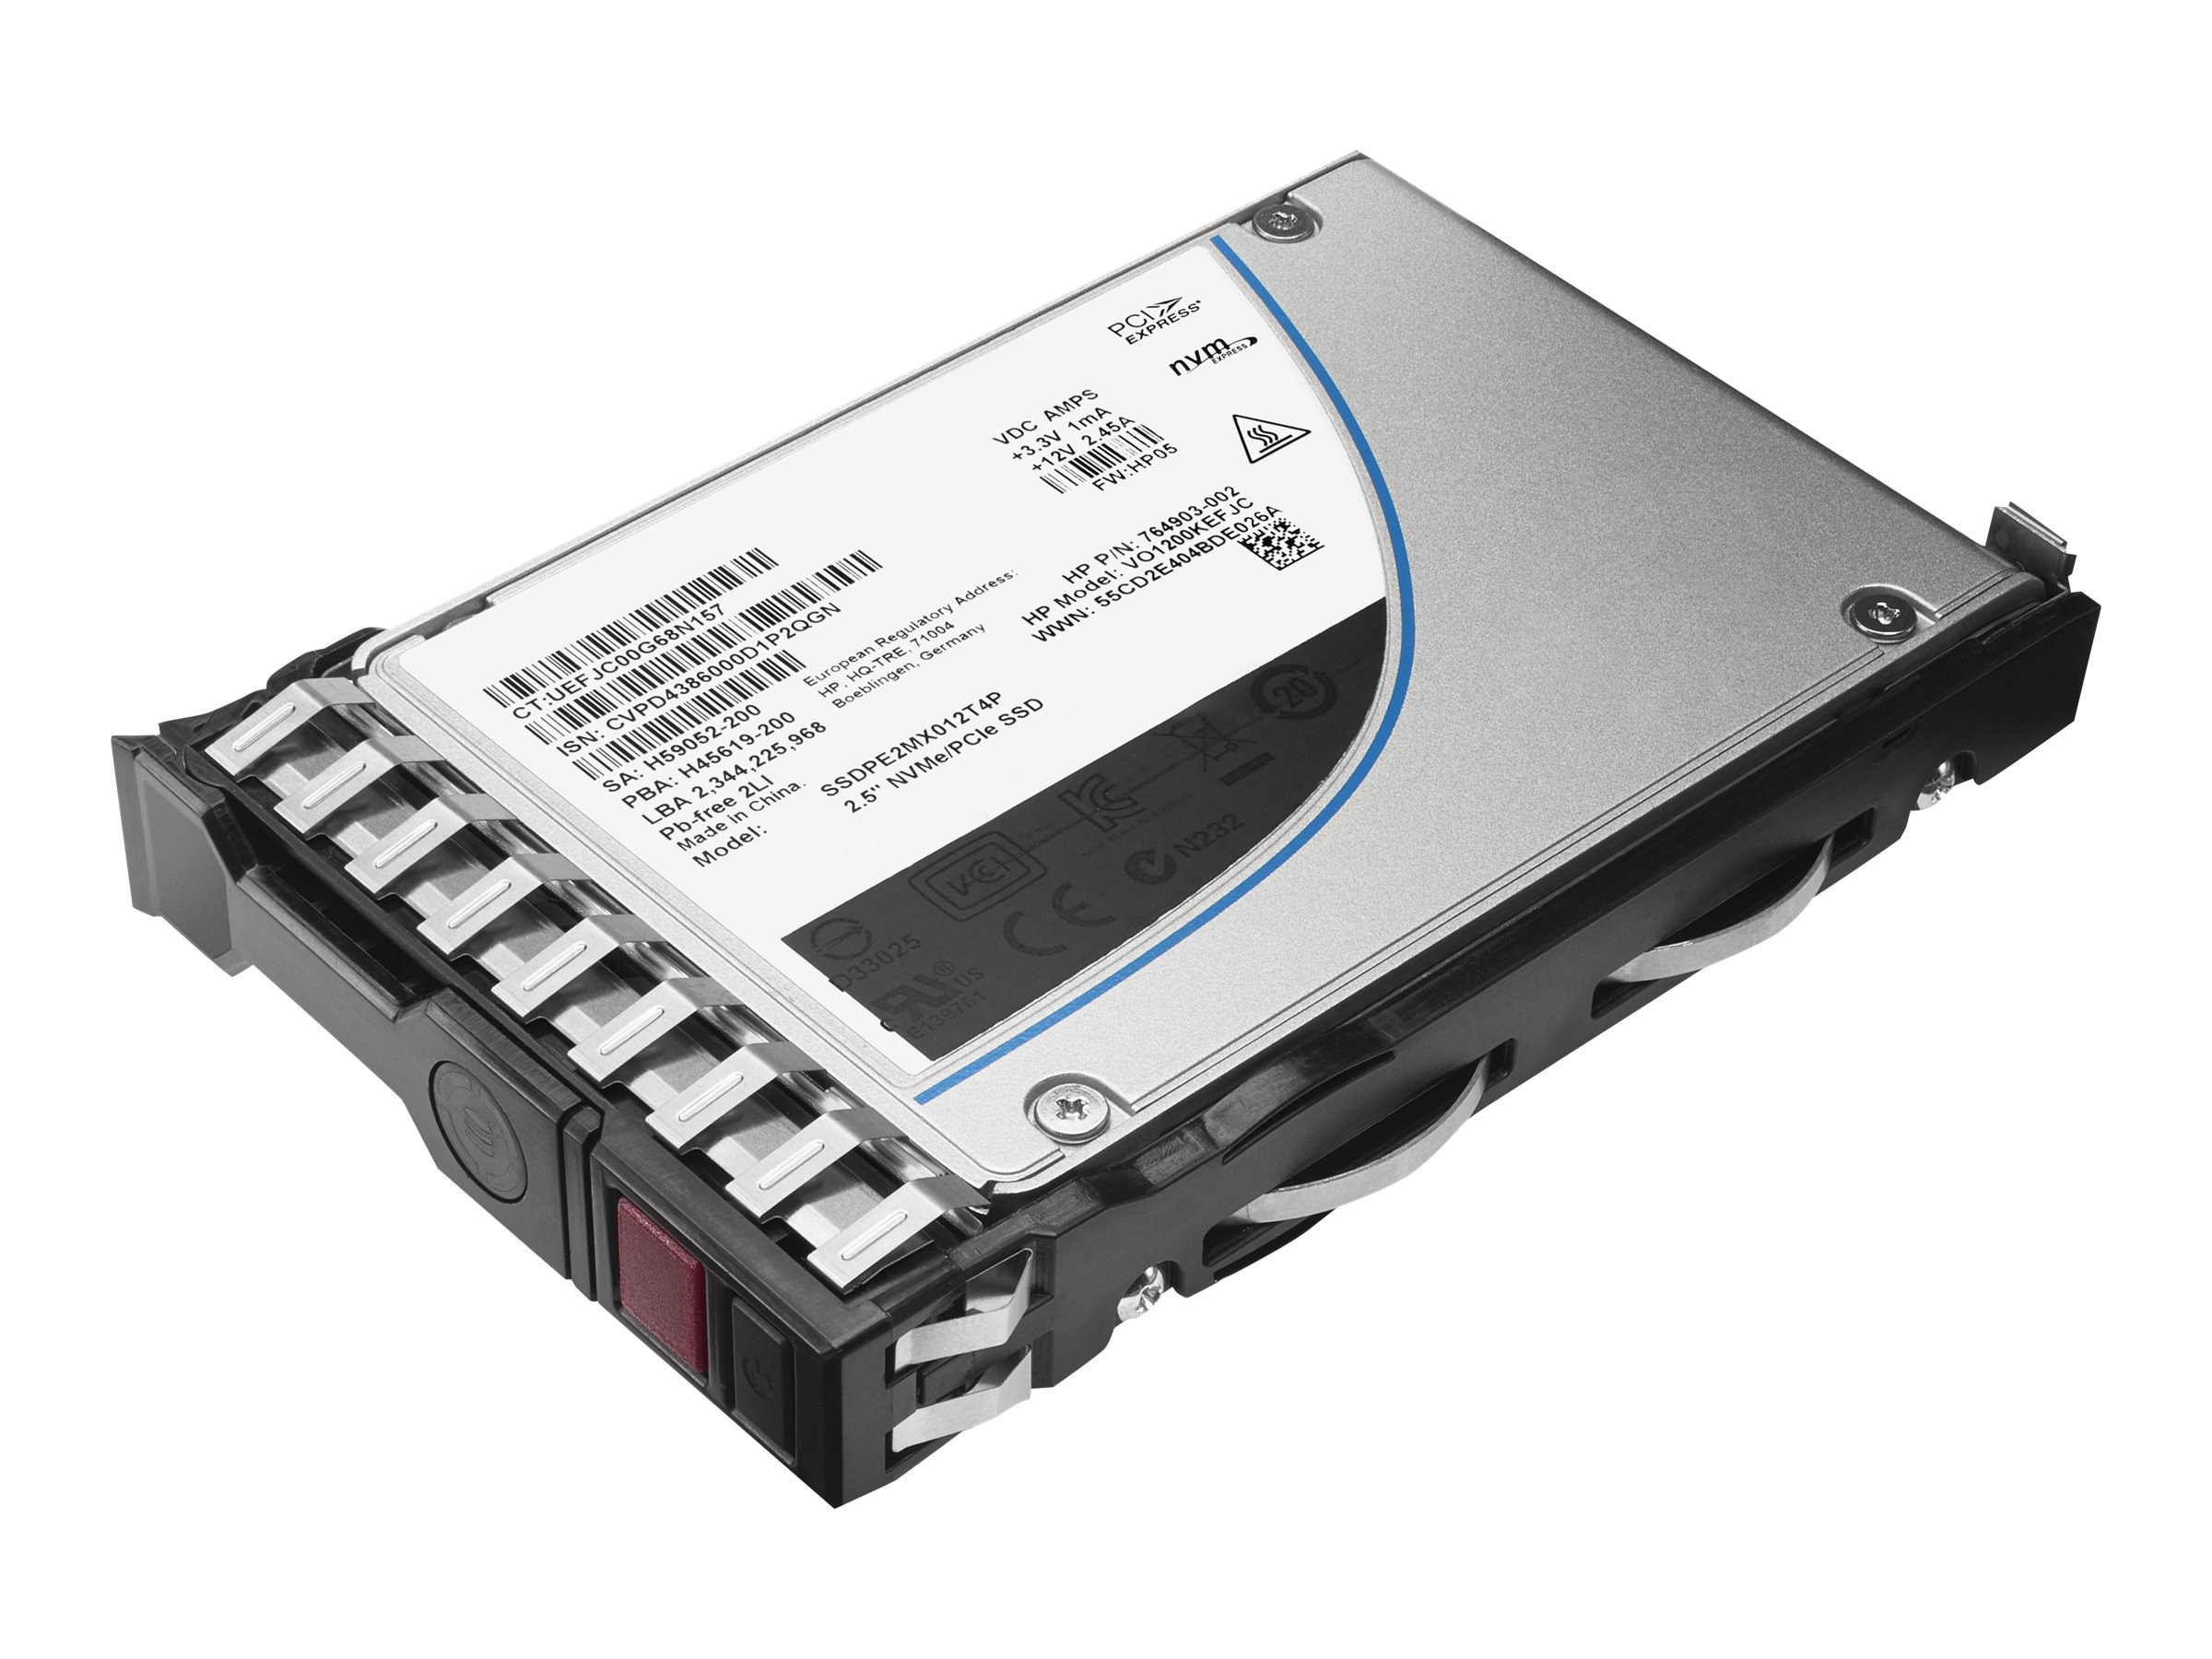 HPE 240GB SATA 6Gb s Value Endurance 2.5 SC Enterprise Value M1 Solid State Drive